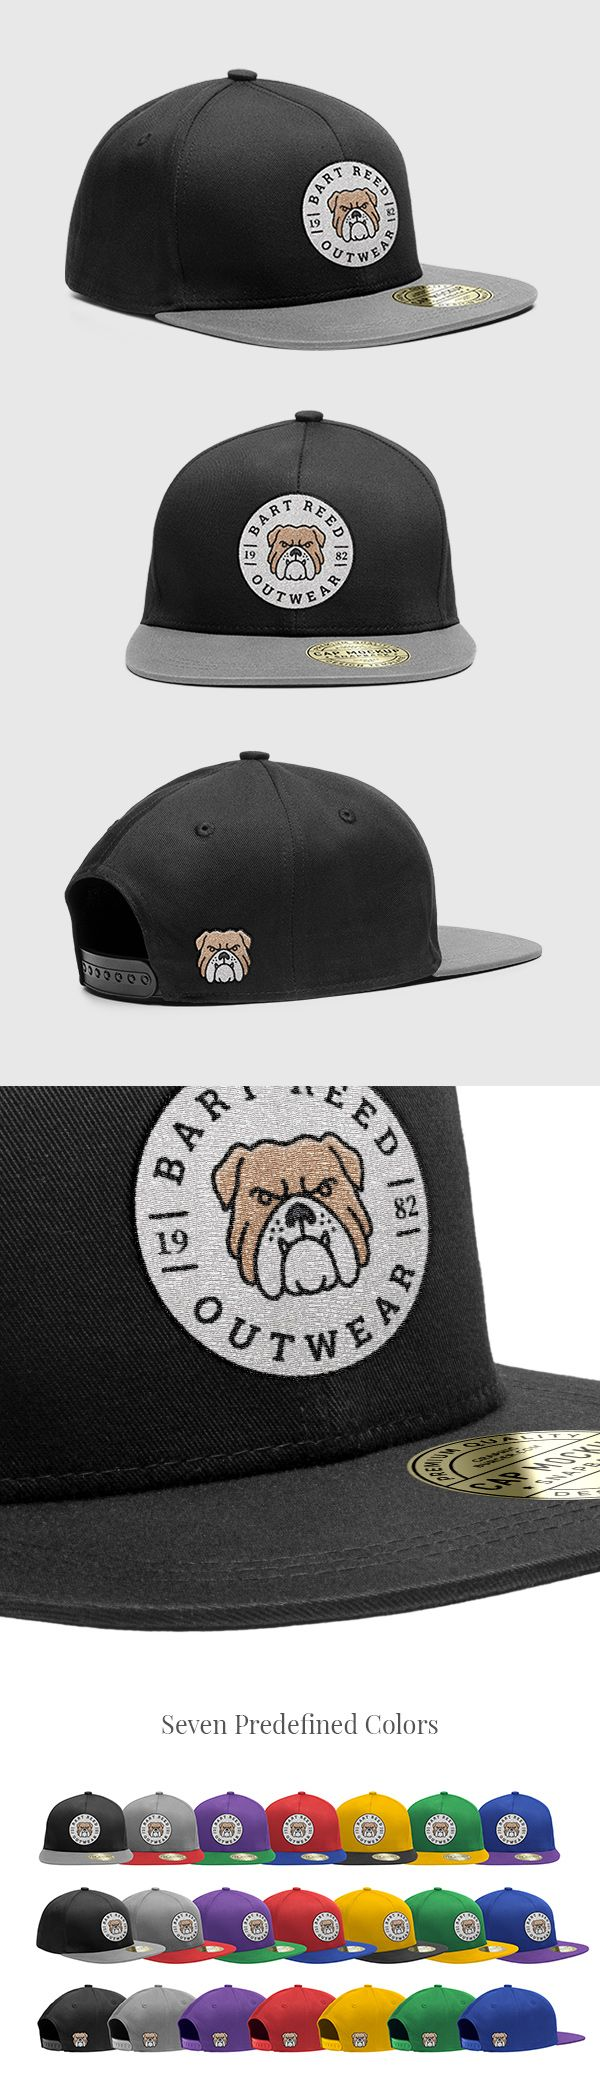 The freebie of the day is a PSD mock-up of a snapback cap with two embroidered elements plus front and angle views...